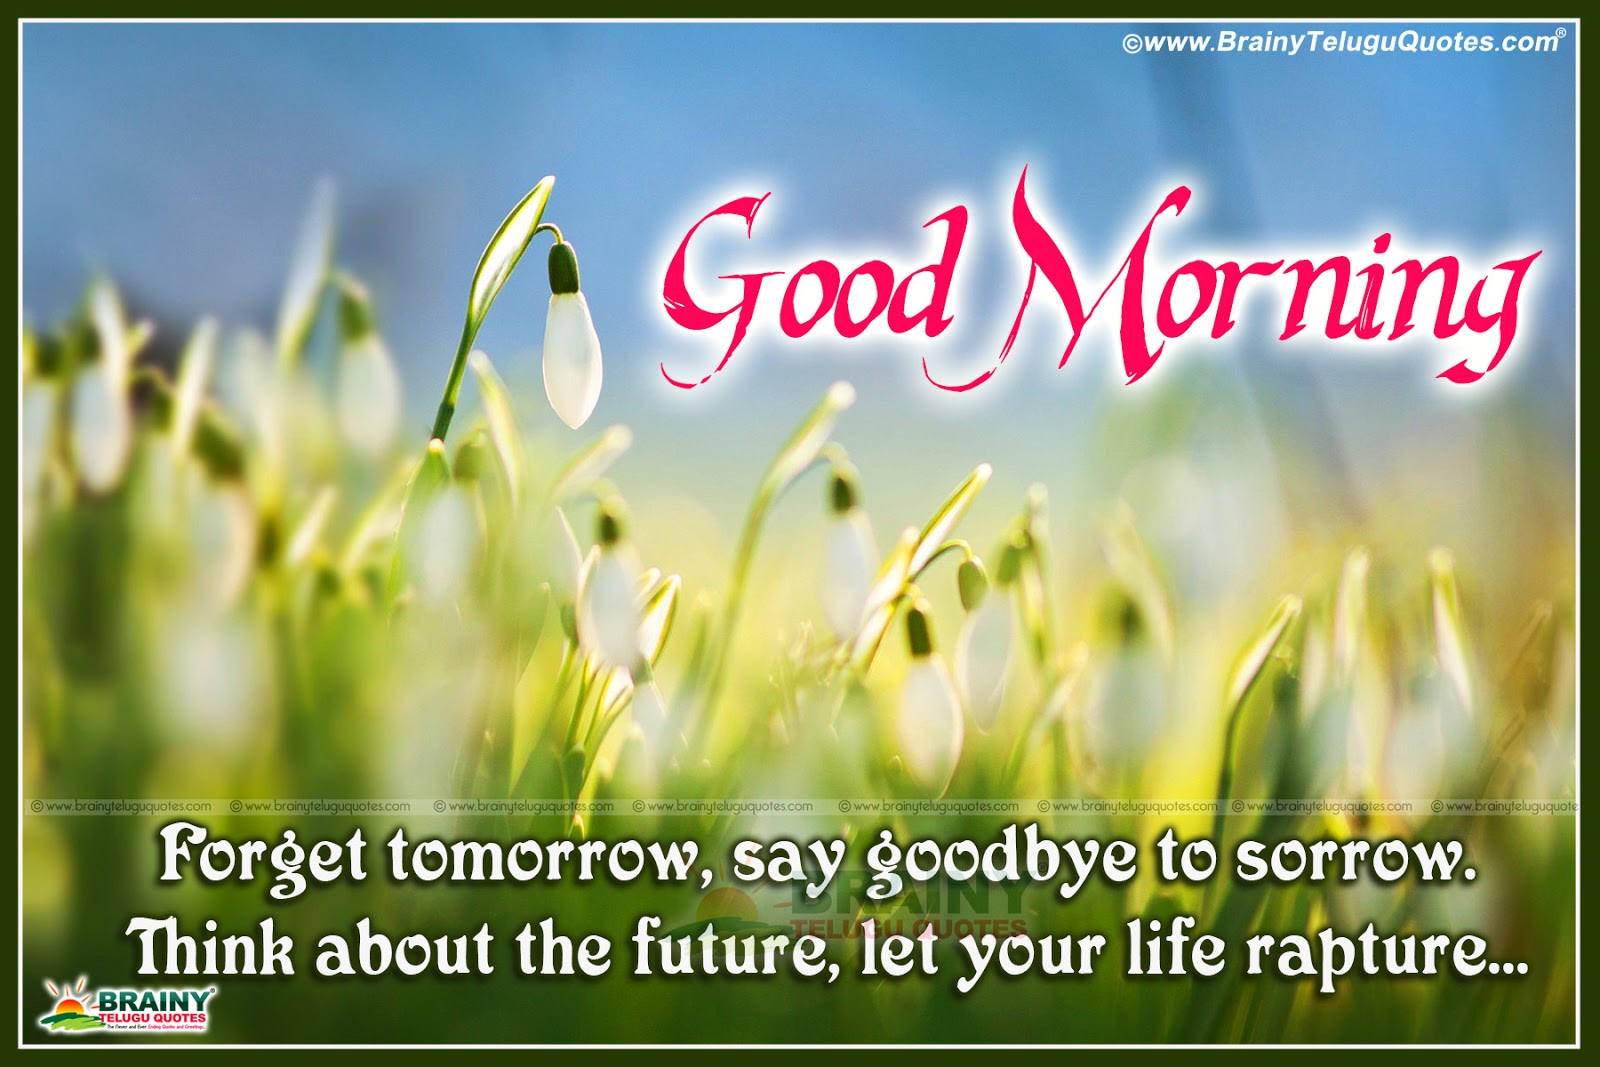 Good Morning Greetings And Inspiring Quotes In English Language